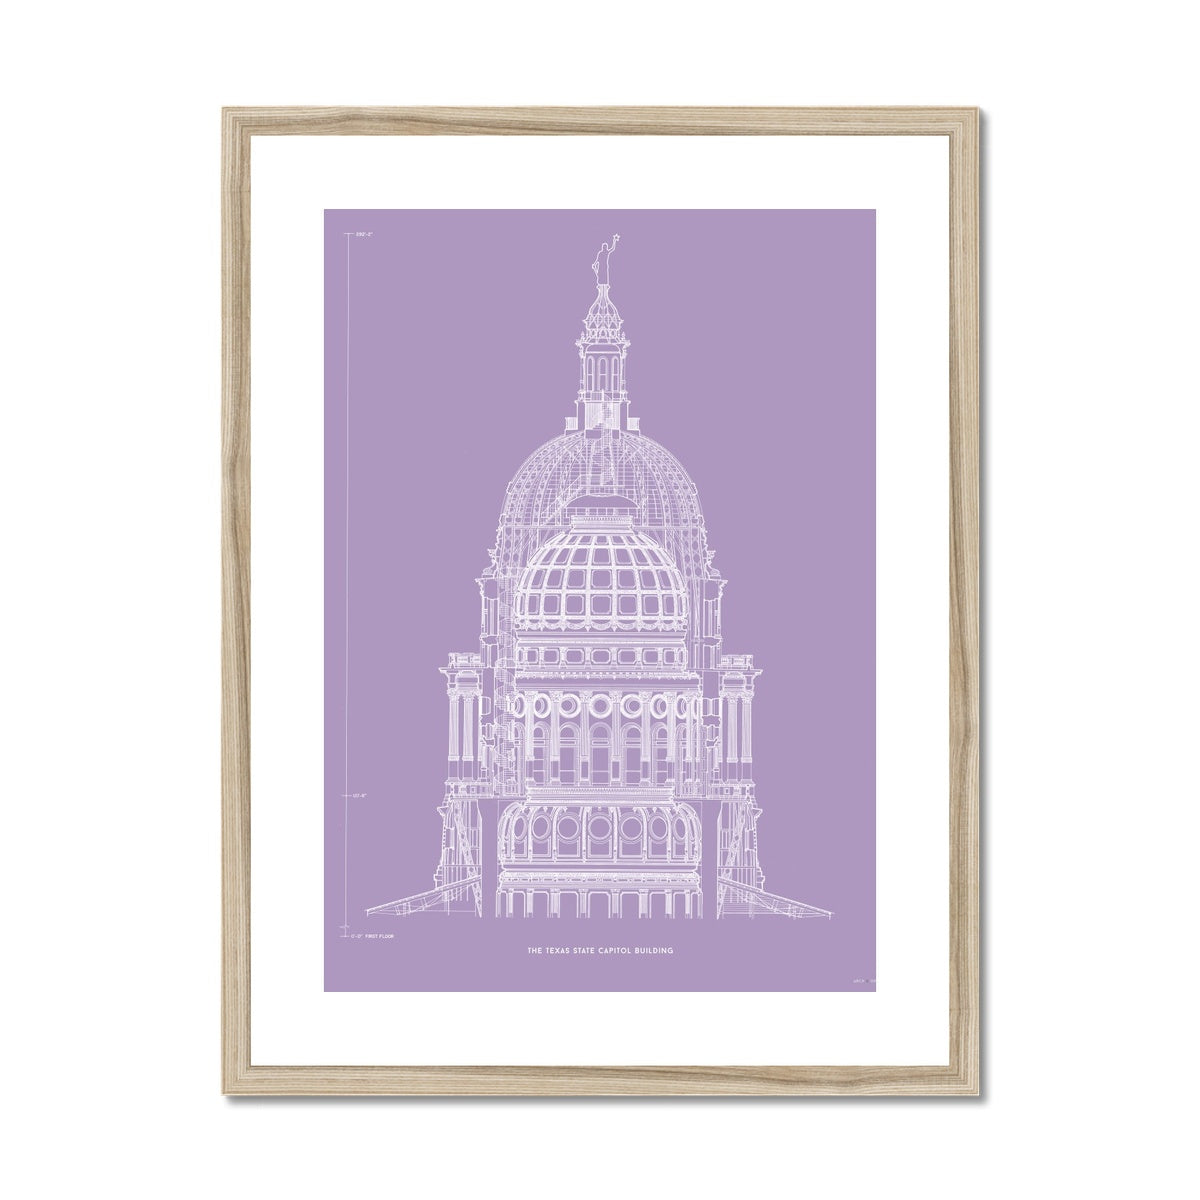 The Texas State Capitol Building - Dome Cross Section - Lavender -  Framed & Mounted Print